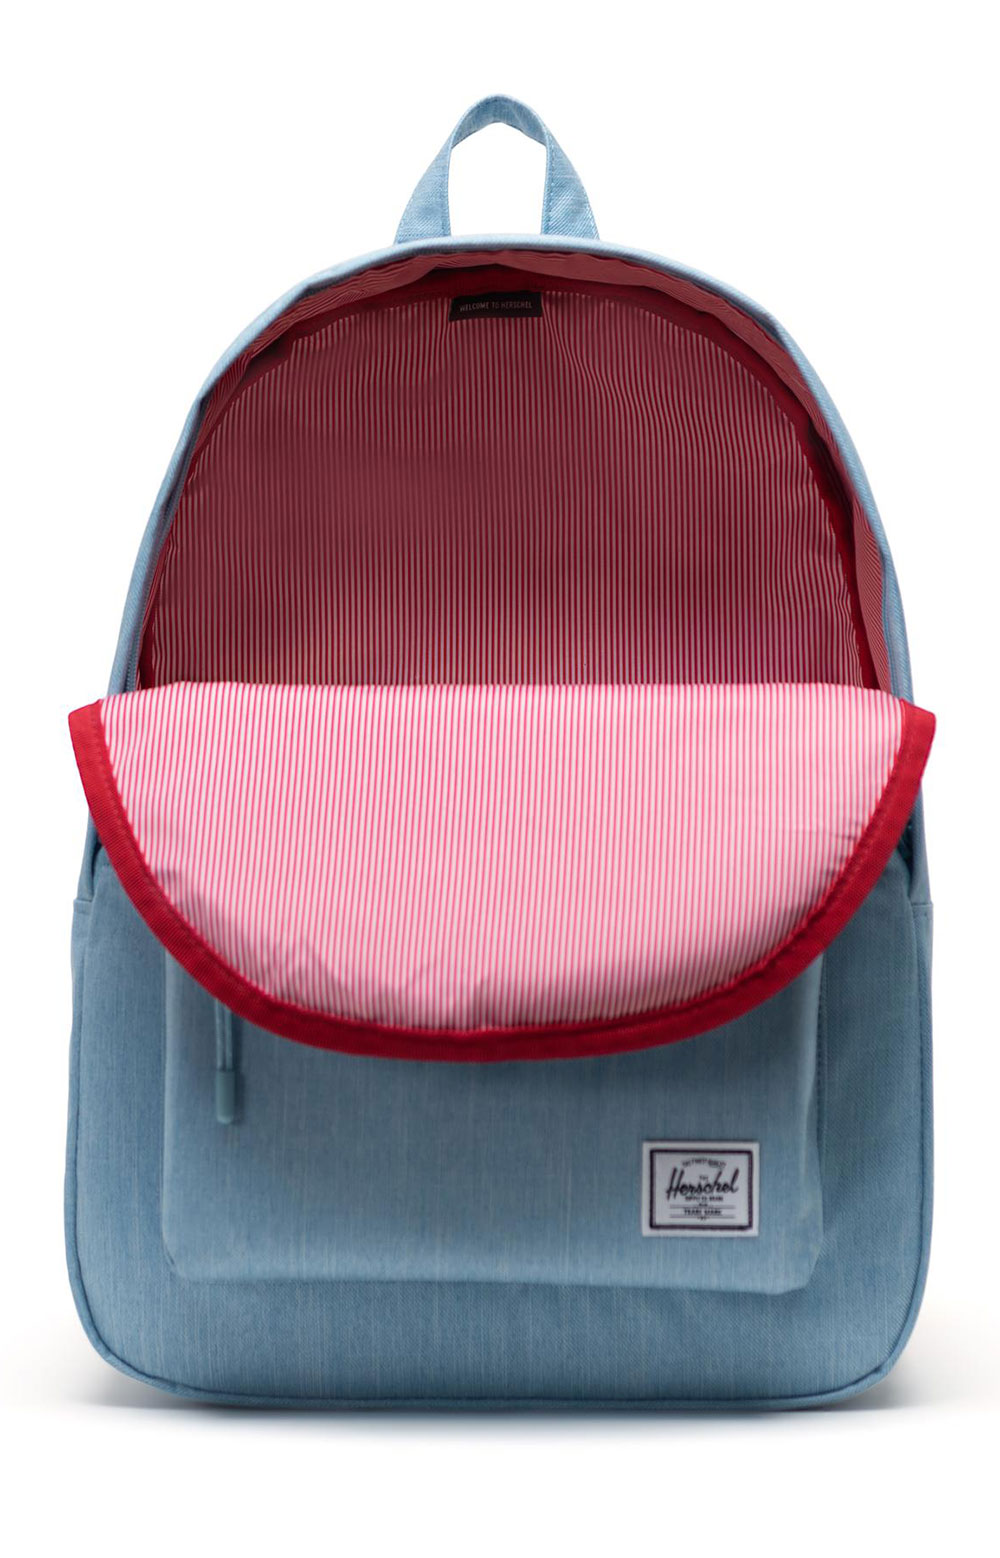 Classic Backpack - Light Denim Crosshatch 2